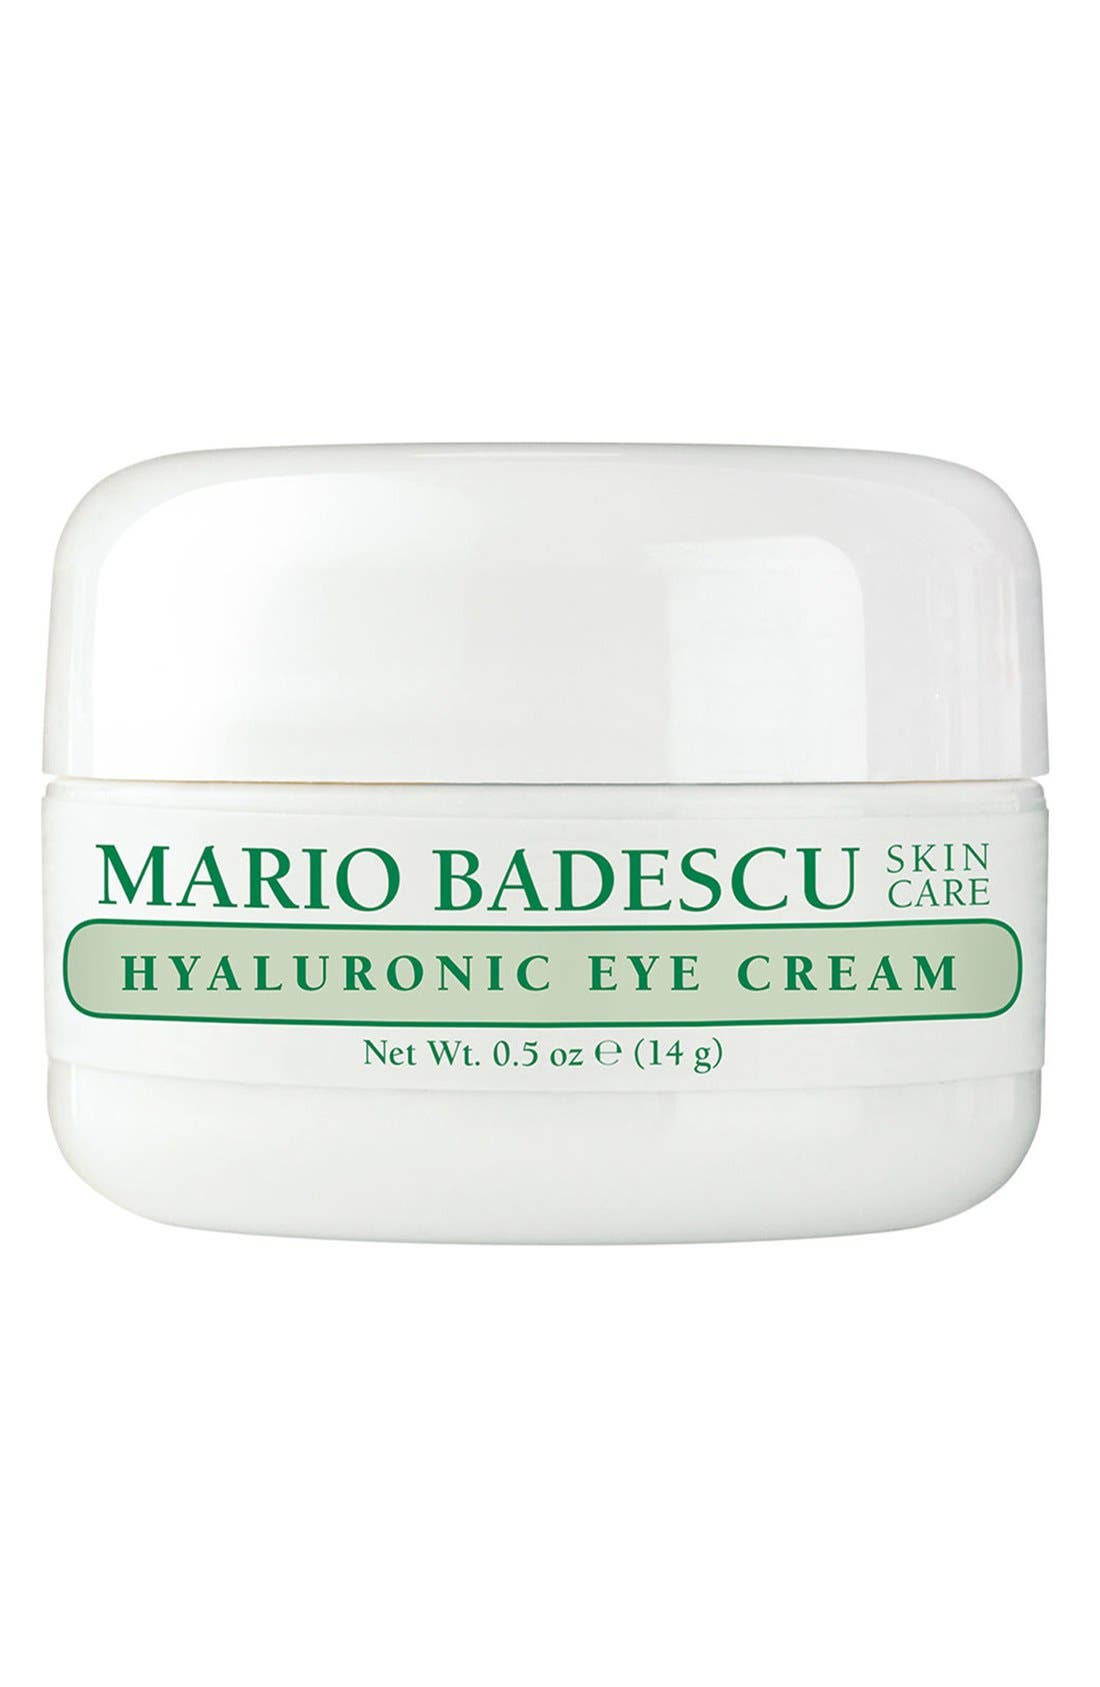 Hyaluronic Eye Cream,                         Main,                         color, NONE